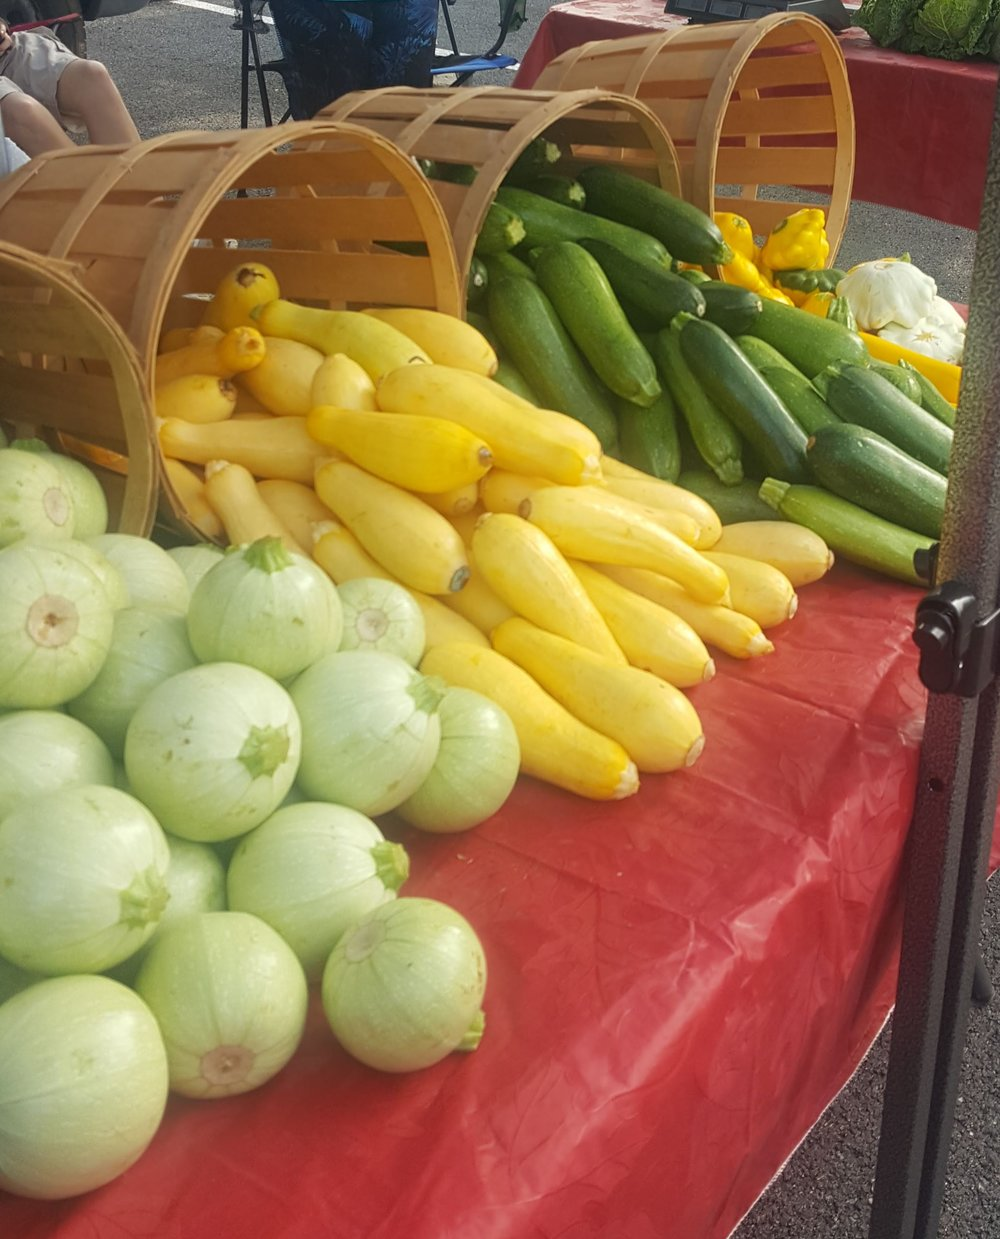 Zucchini, Yellow Squash, and Globes